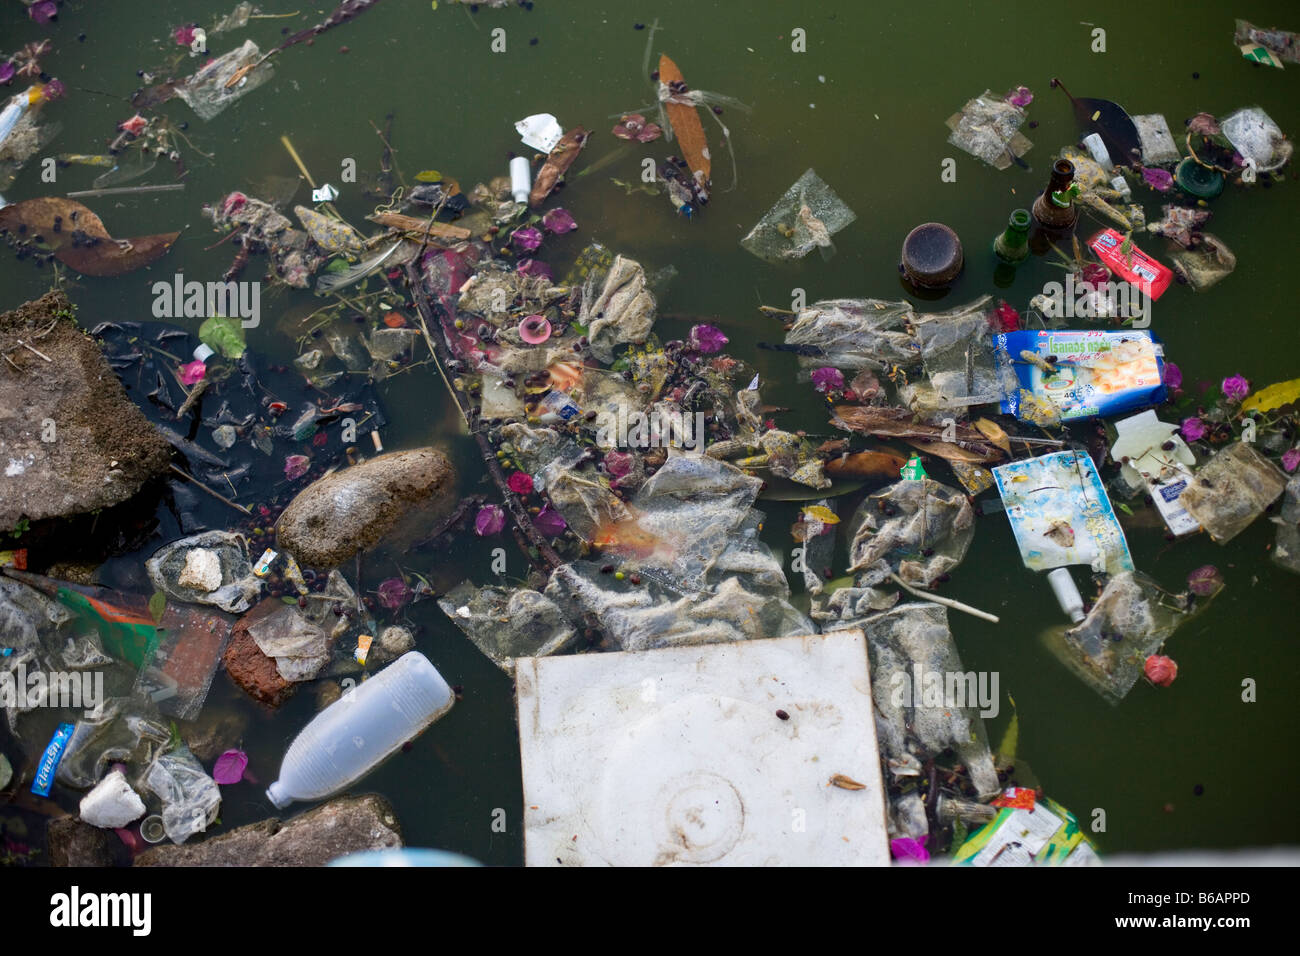 A polluted river. - Stock Image